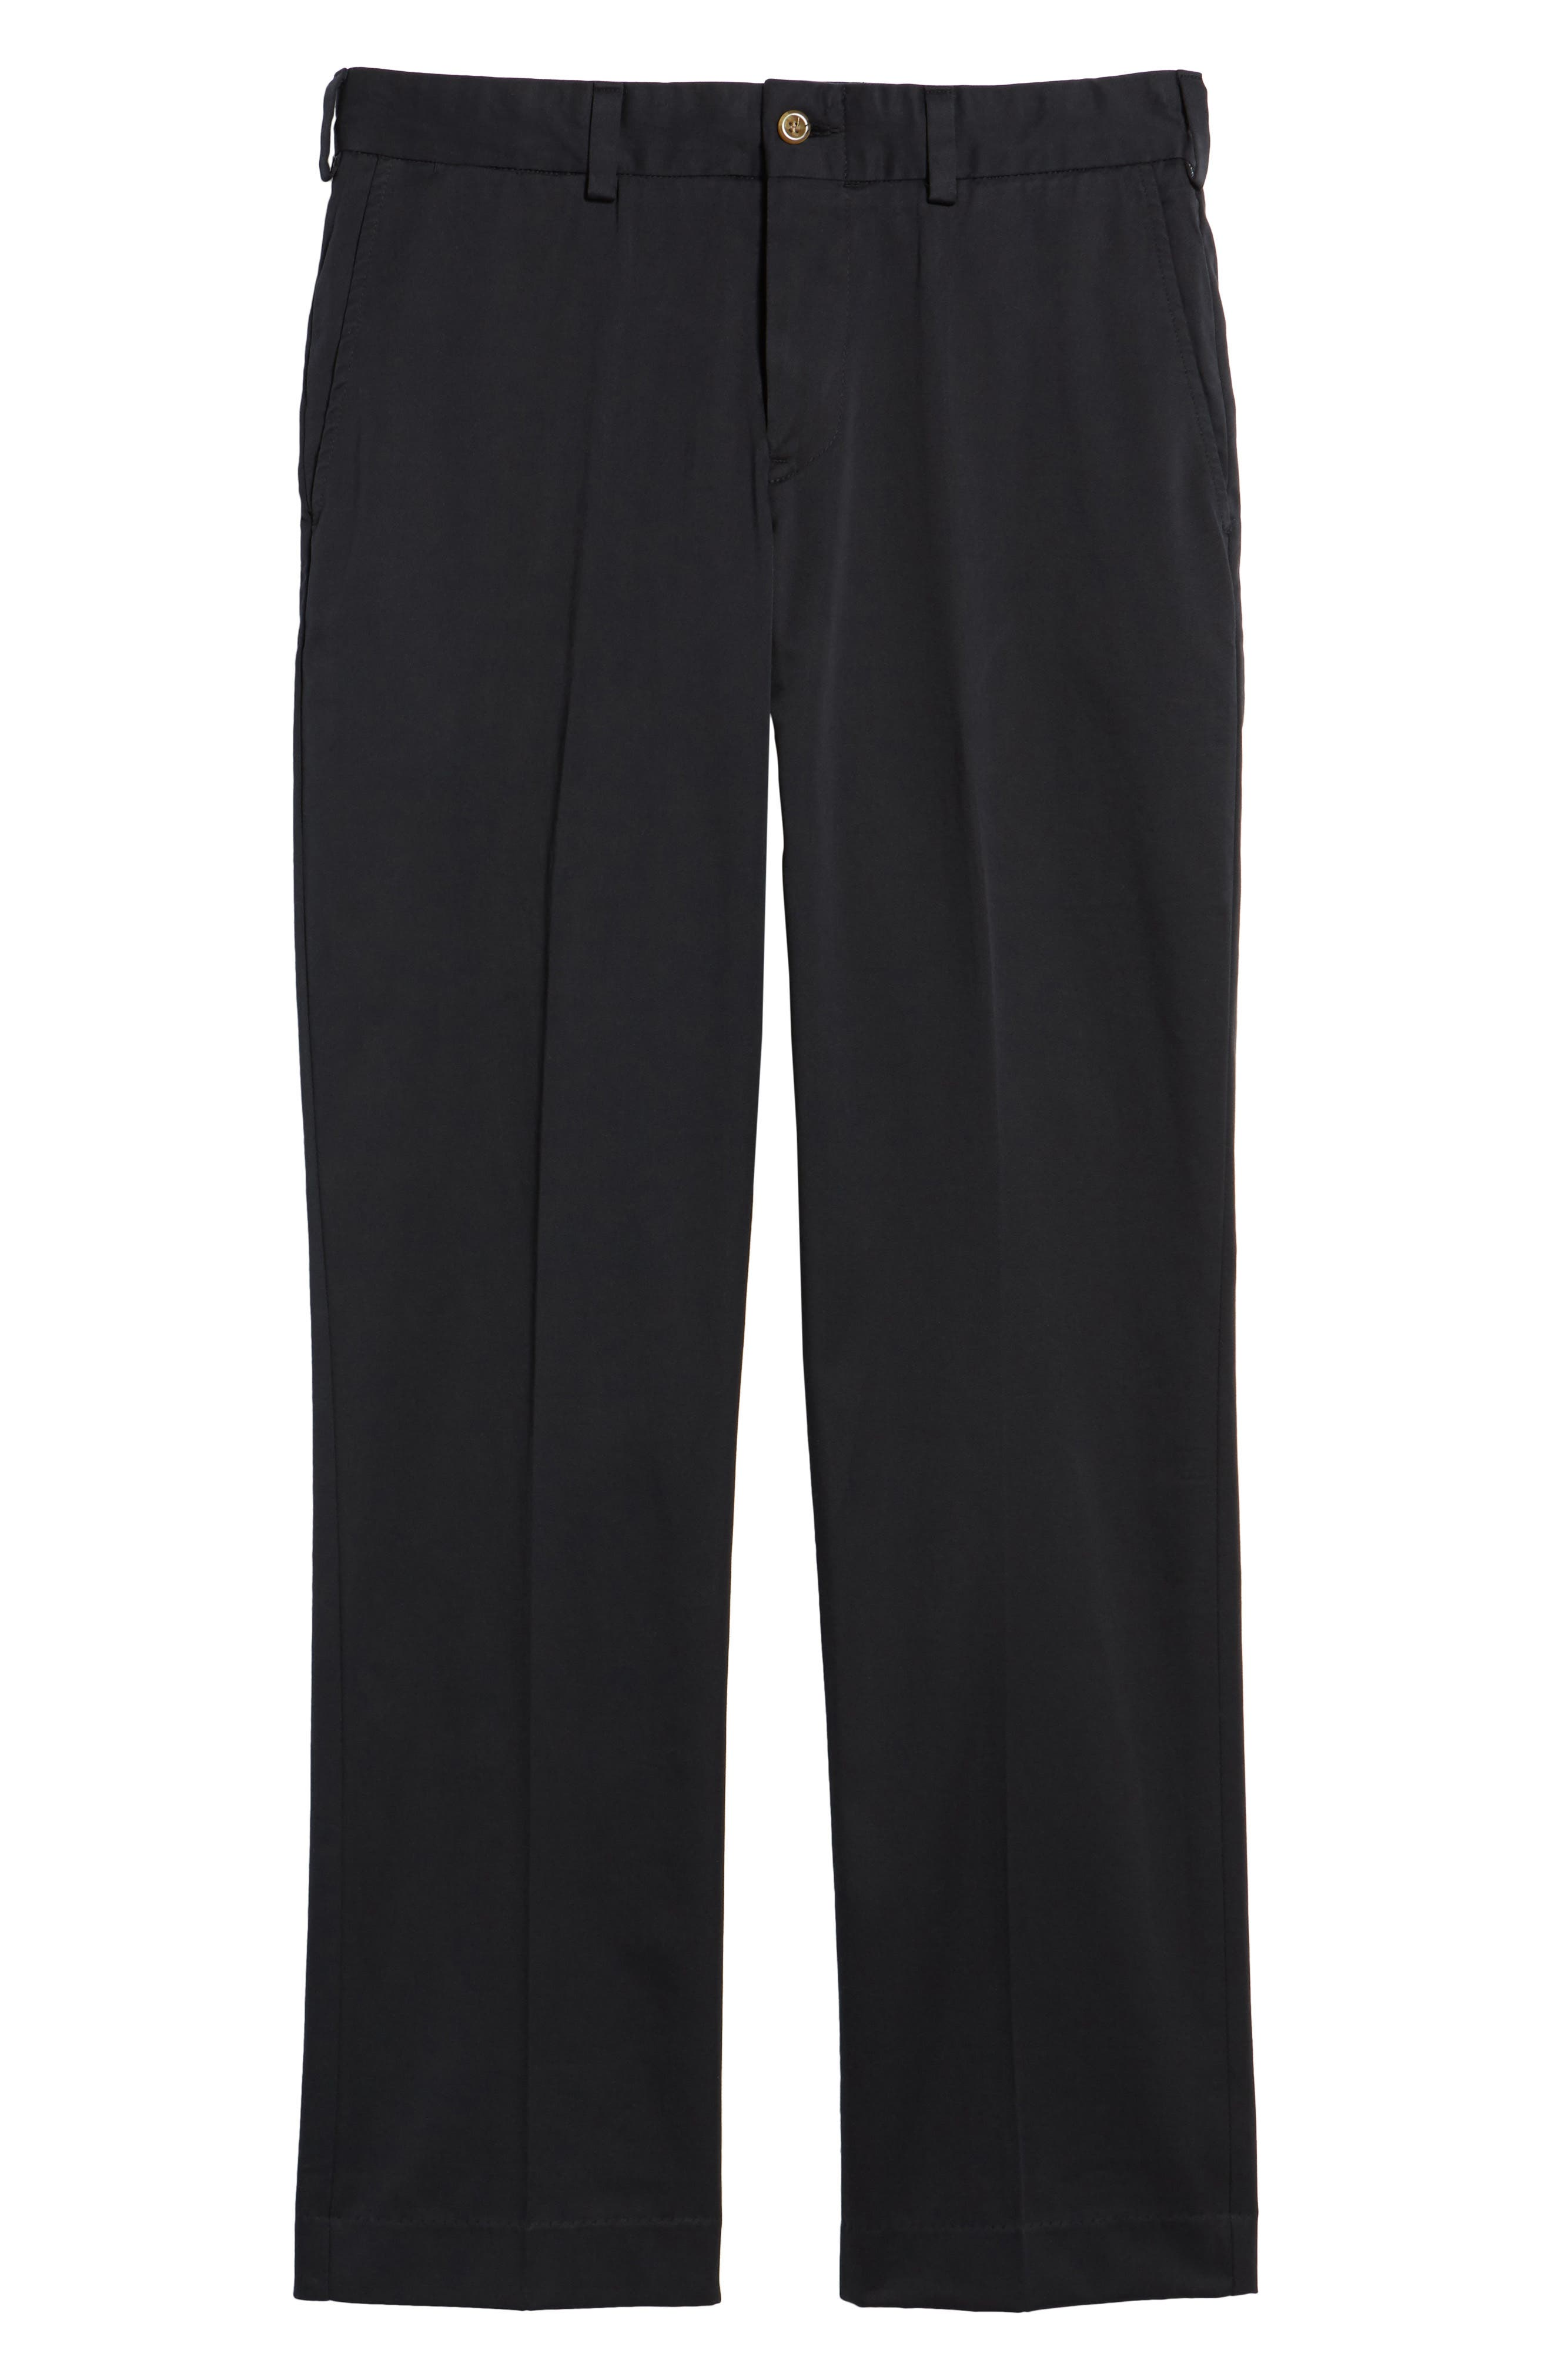 Straight Fit Chamois Cloth Pants,                             Alternate thumbnail 6, color,                             BLACK